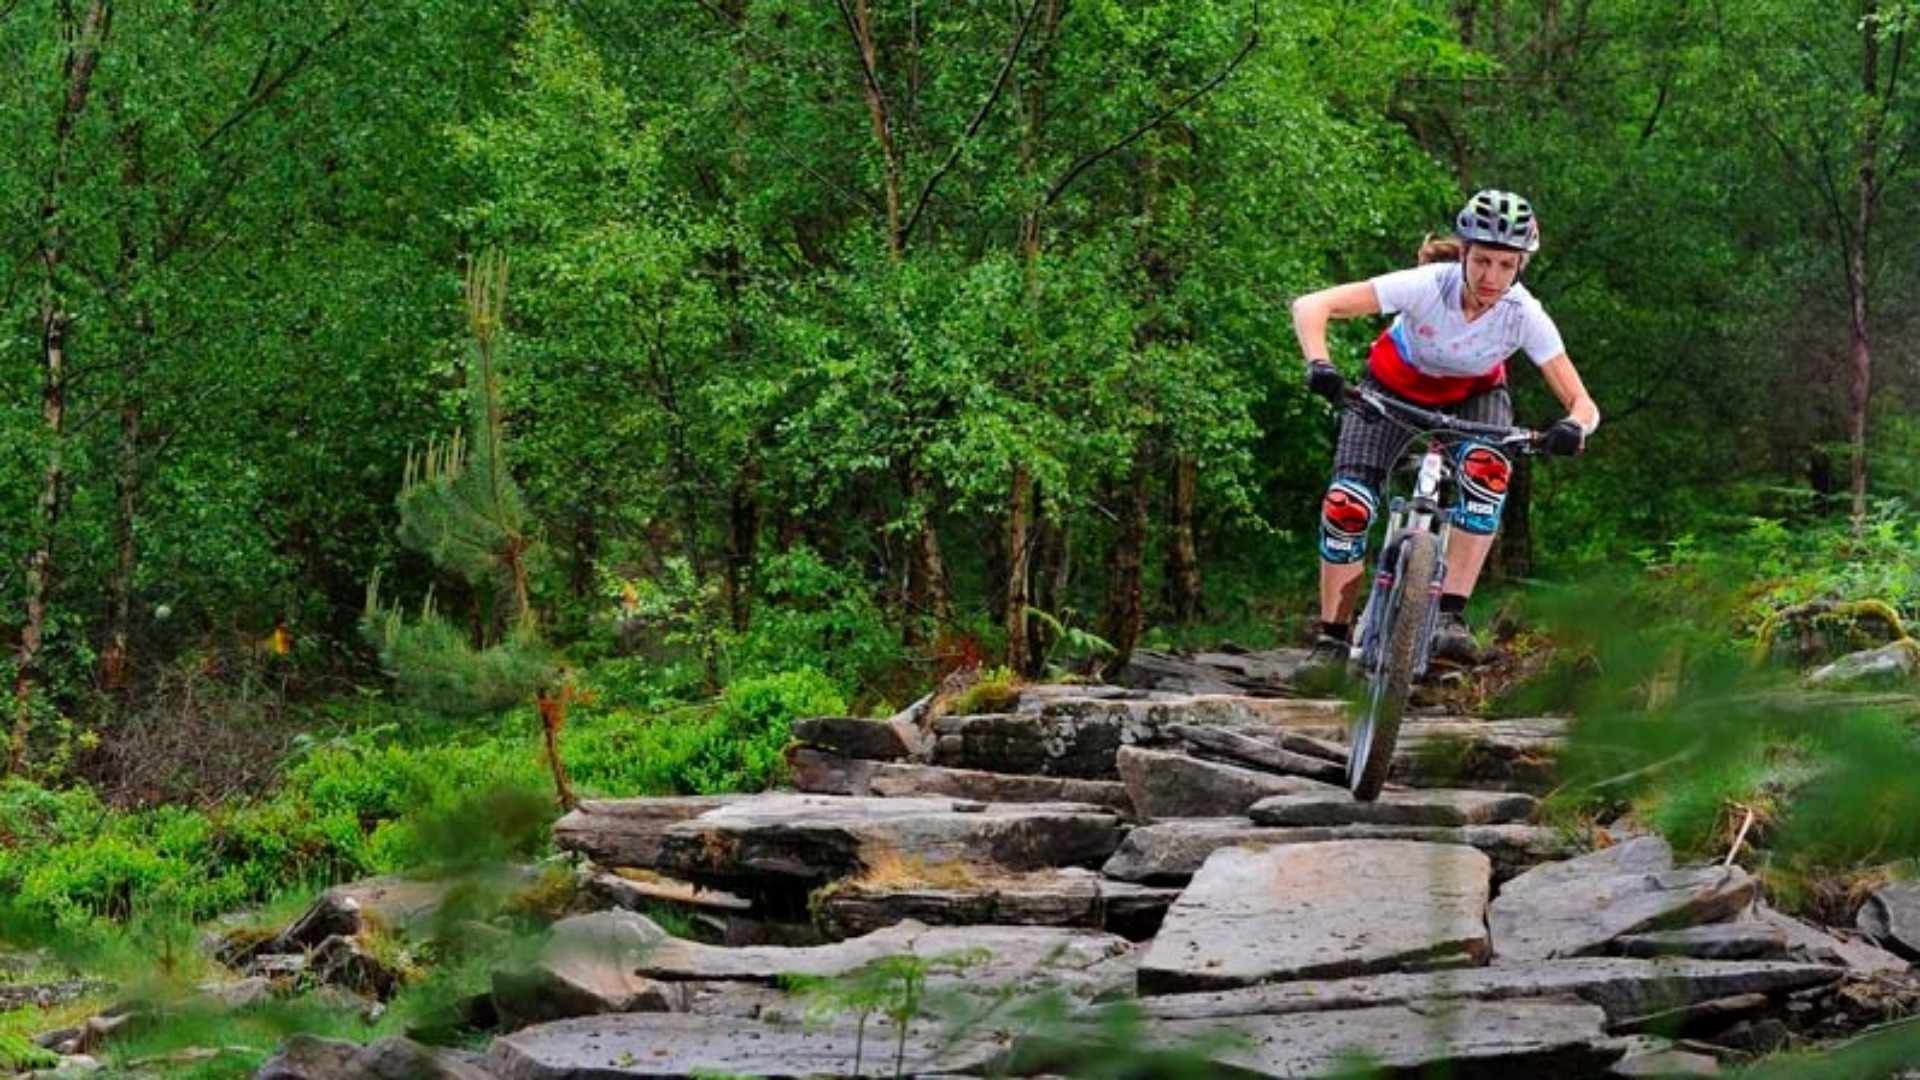 Bike Park Wales is committed to encouraging more women into the sport